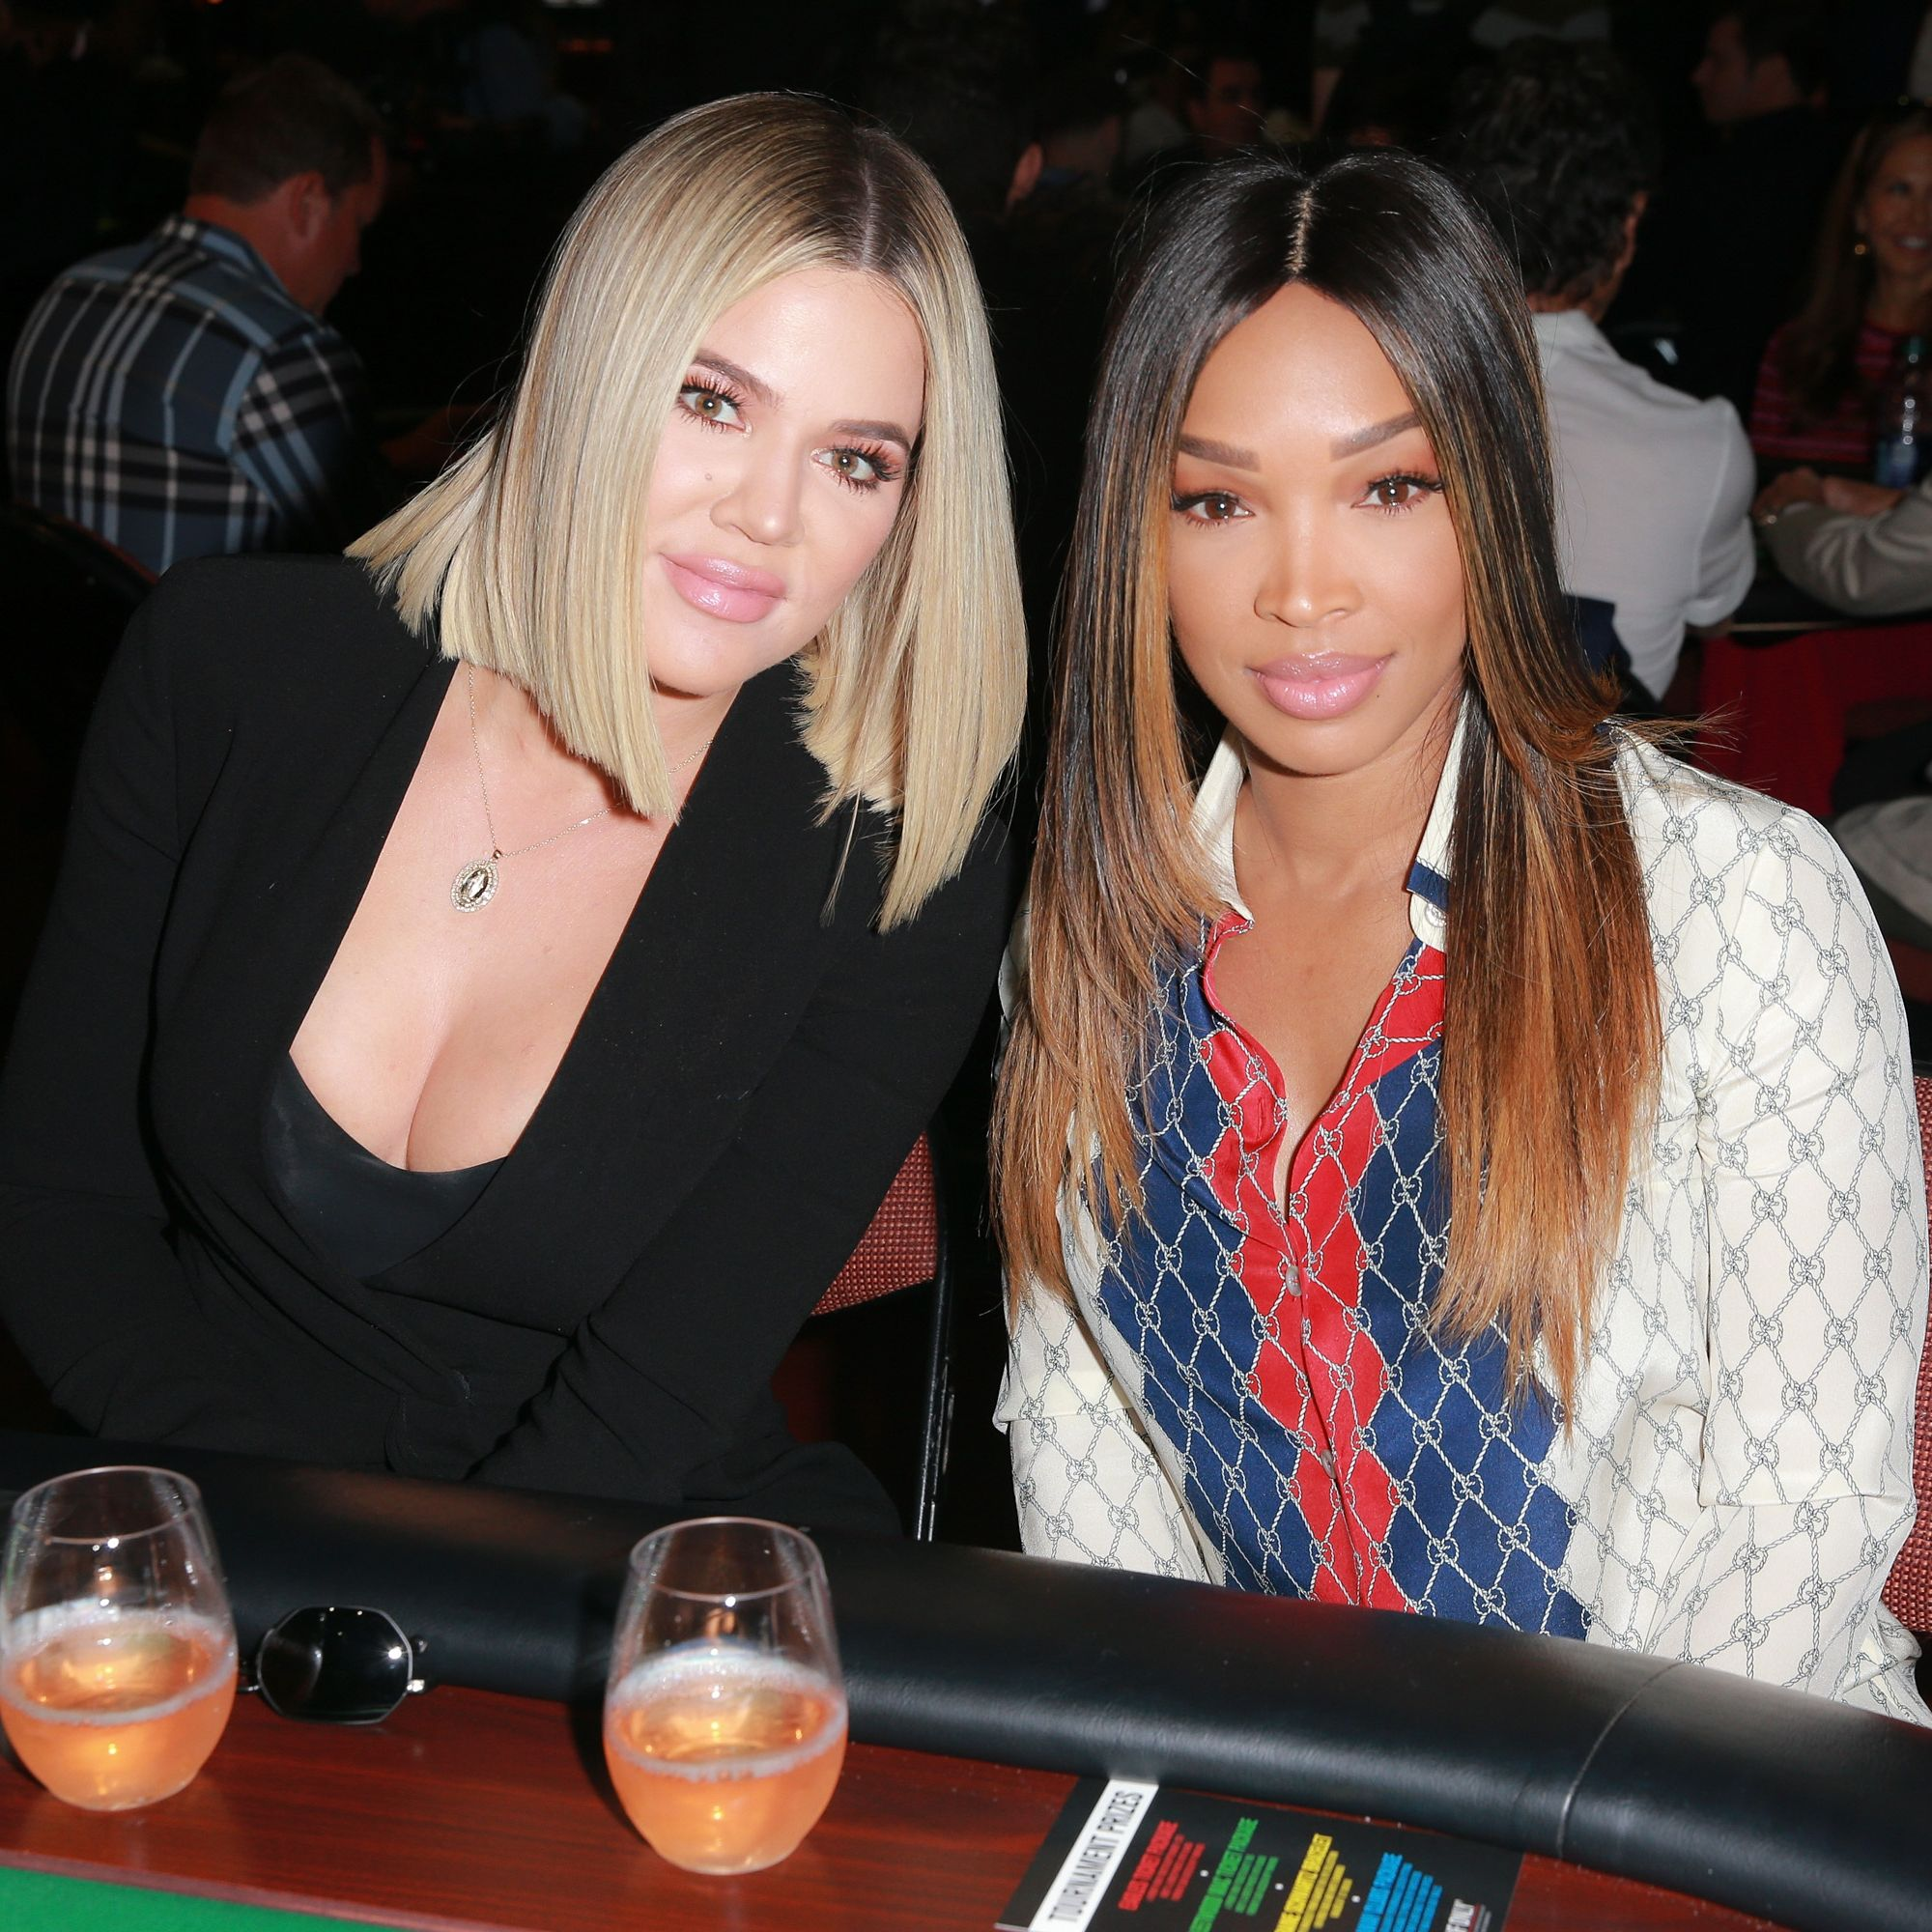 Khloé Kardashian's BFF Just Updated Everyone On How She's Handling This Cheating Scandal